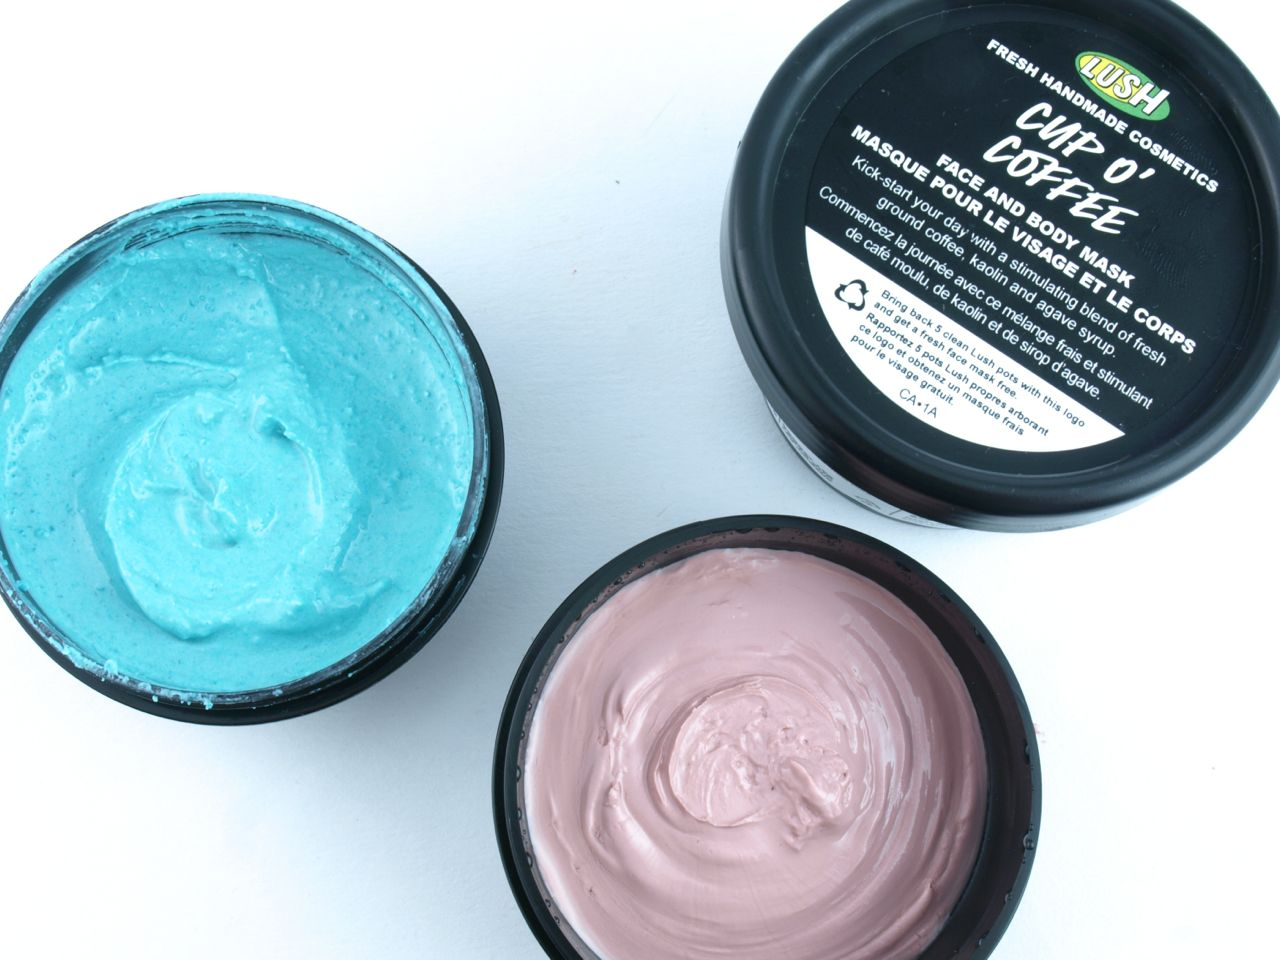 Dont look at me lush face mask review - Lush Is All About Freshness And There Is Nothing Fresher Than The Brand S Fresh Face Masks For Fall 2015 Lush Is Adding Three New Totally Buzzworthy Fresh